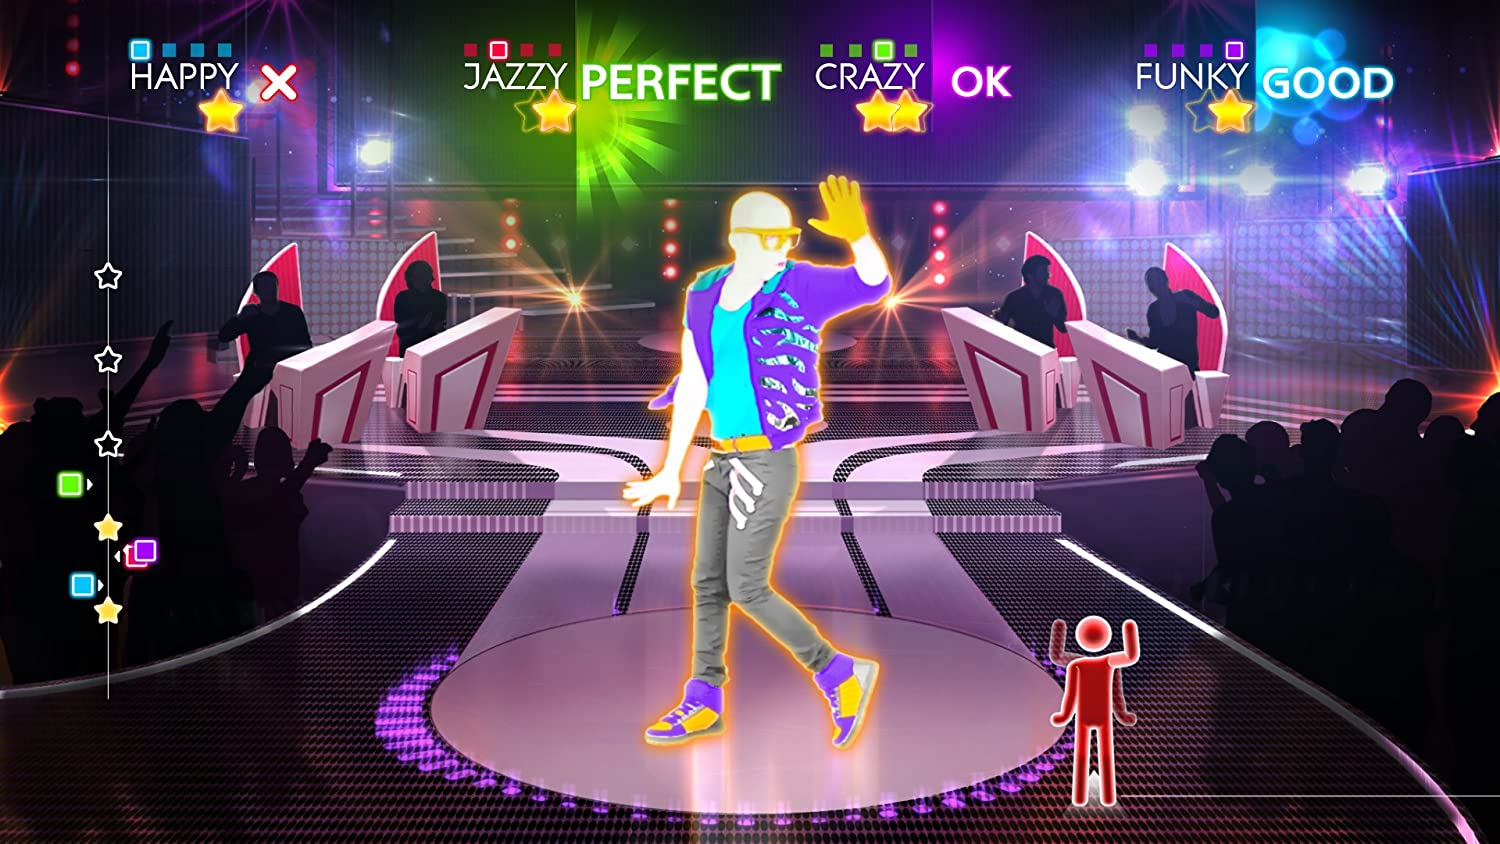 Just Dance Game For Xbox 360 : Amazon.com: just dance 4: xbox 360: ubisoft: video games